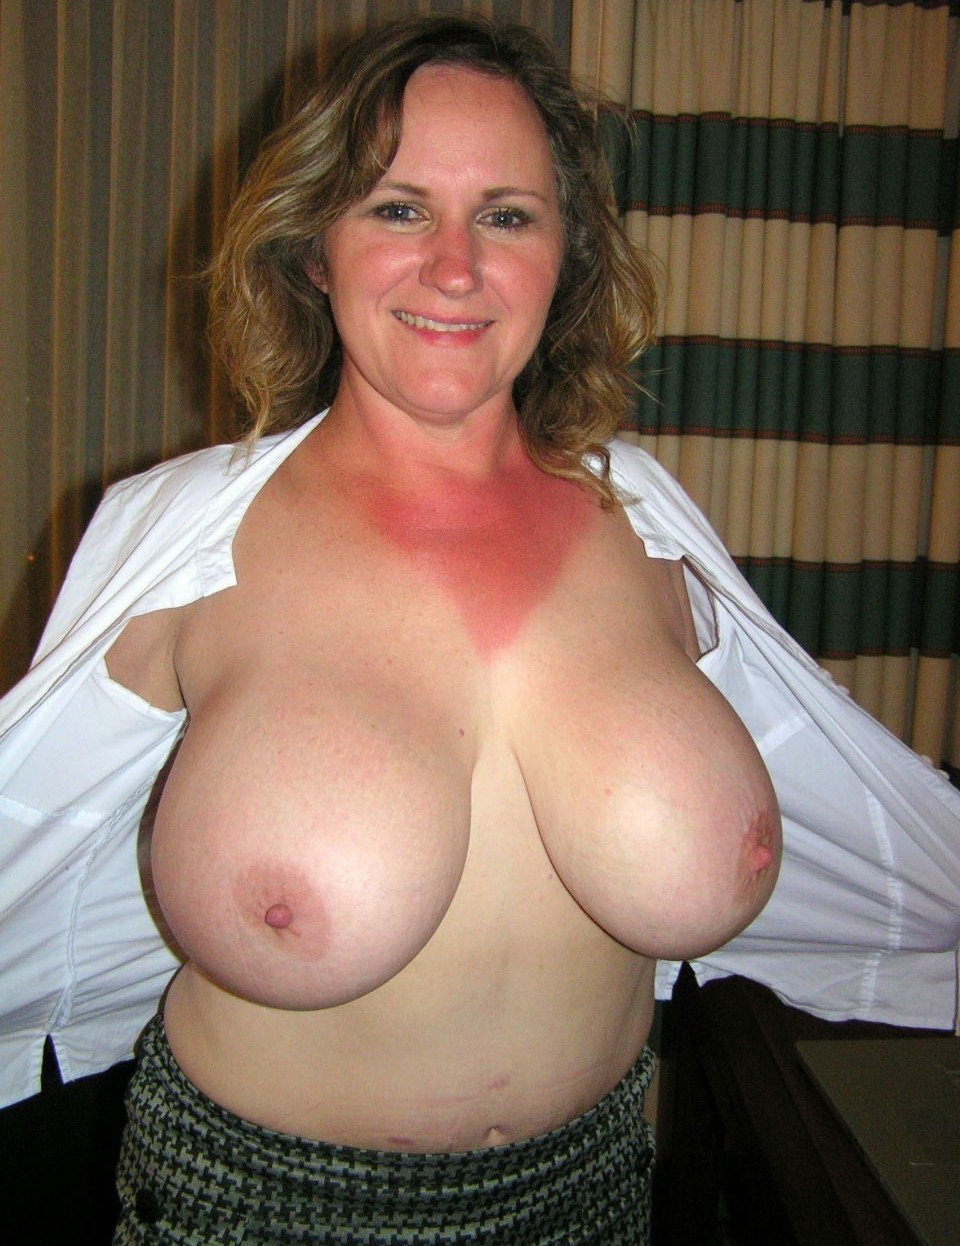 Nude older women breast mary